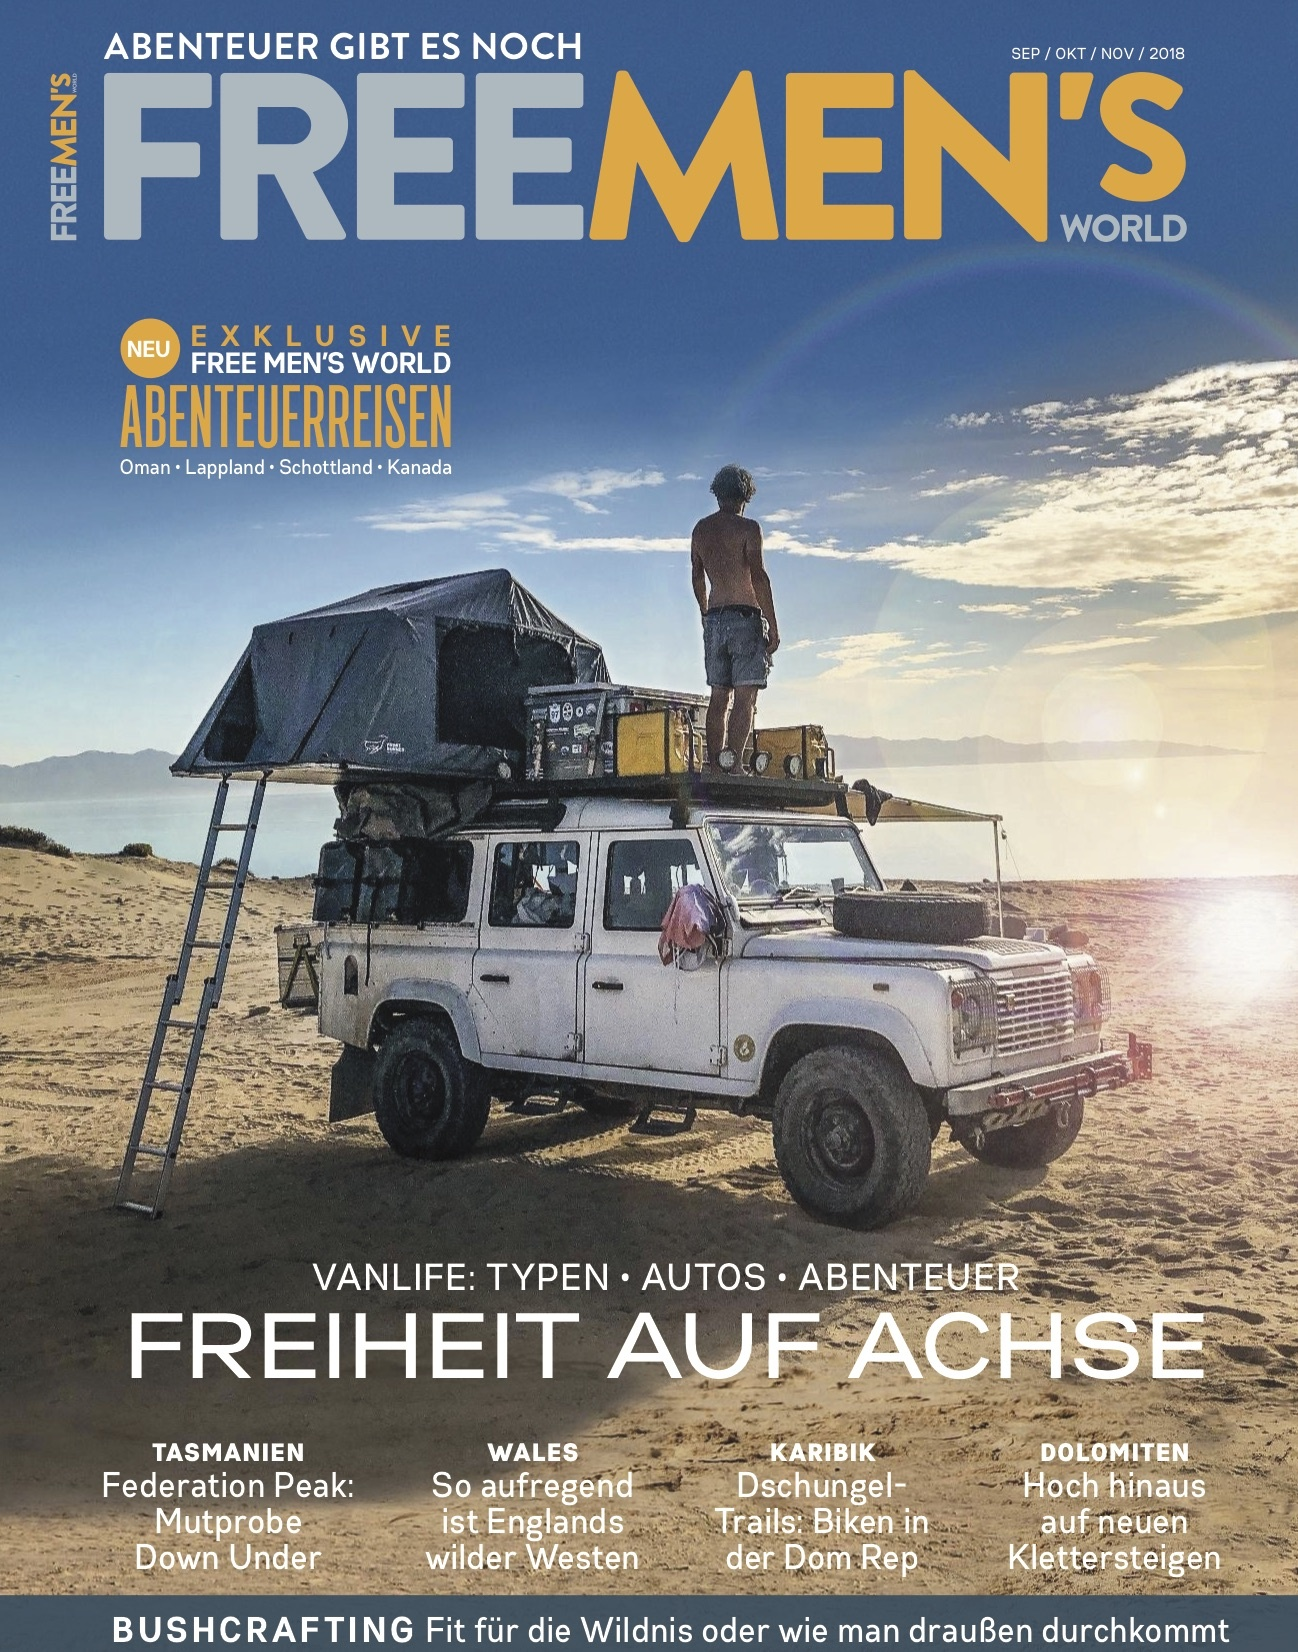 FREE MEN'S WORLD FREE MEN'S WORLD - Freiheit auf Achse